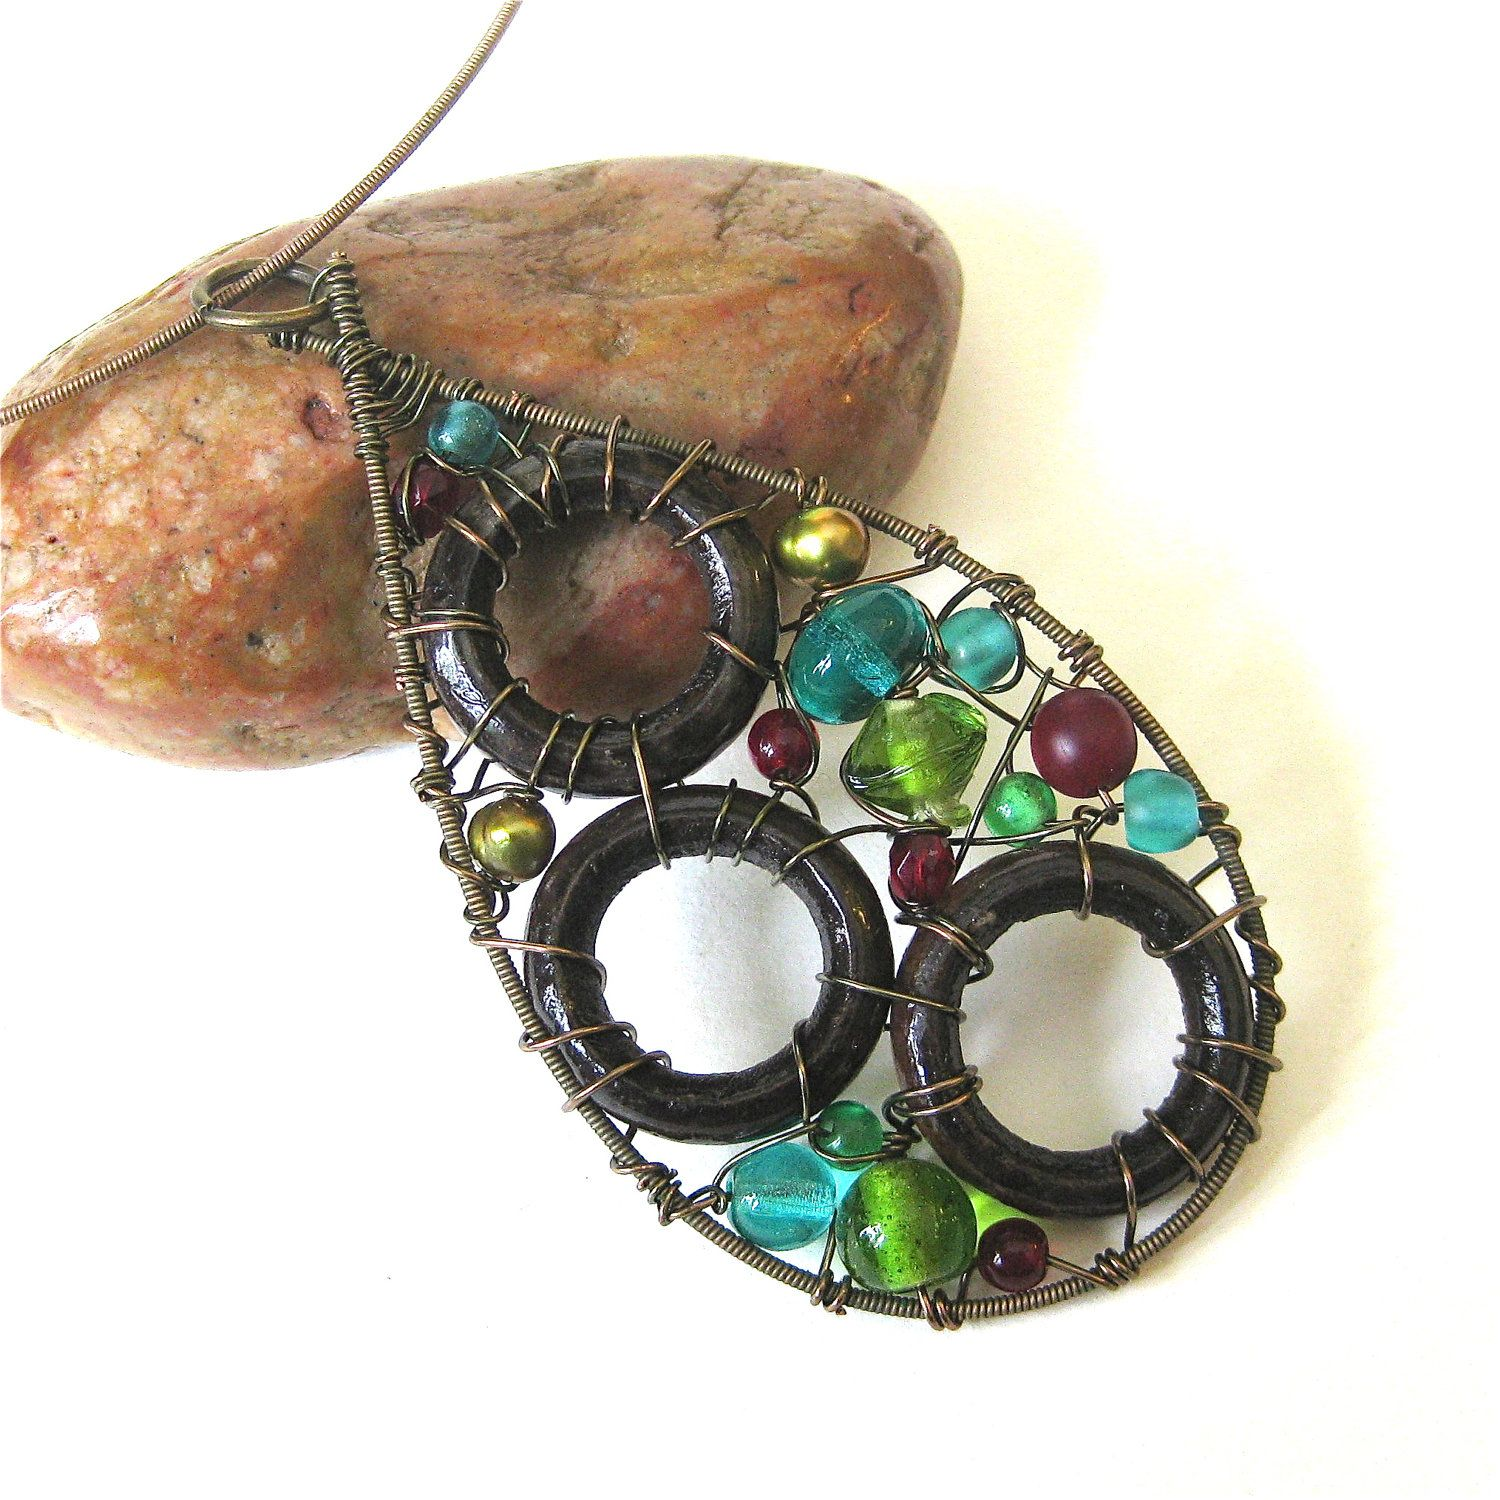 Recycled guitar string jewelry - Guitar String Necklace Wire Wrapped Pendant Recycled Jewelry Teardrop